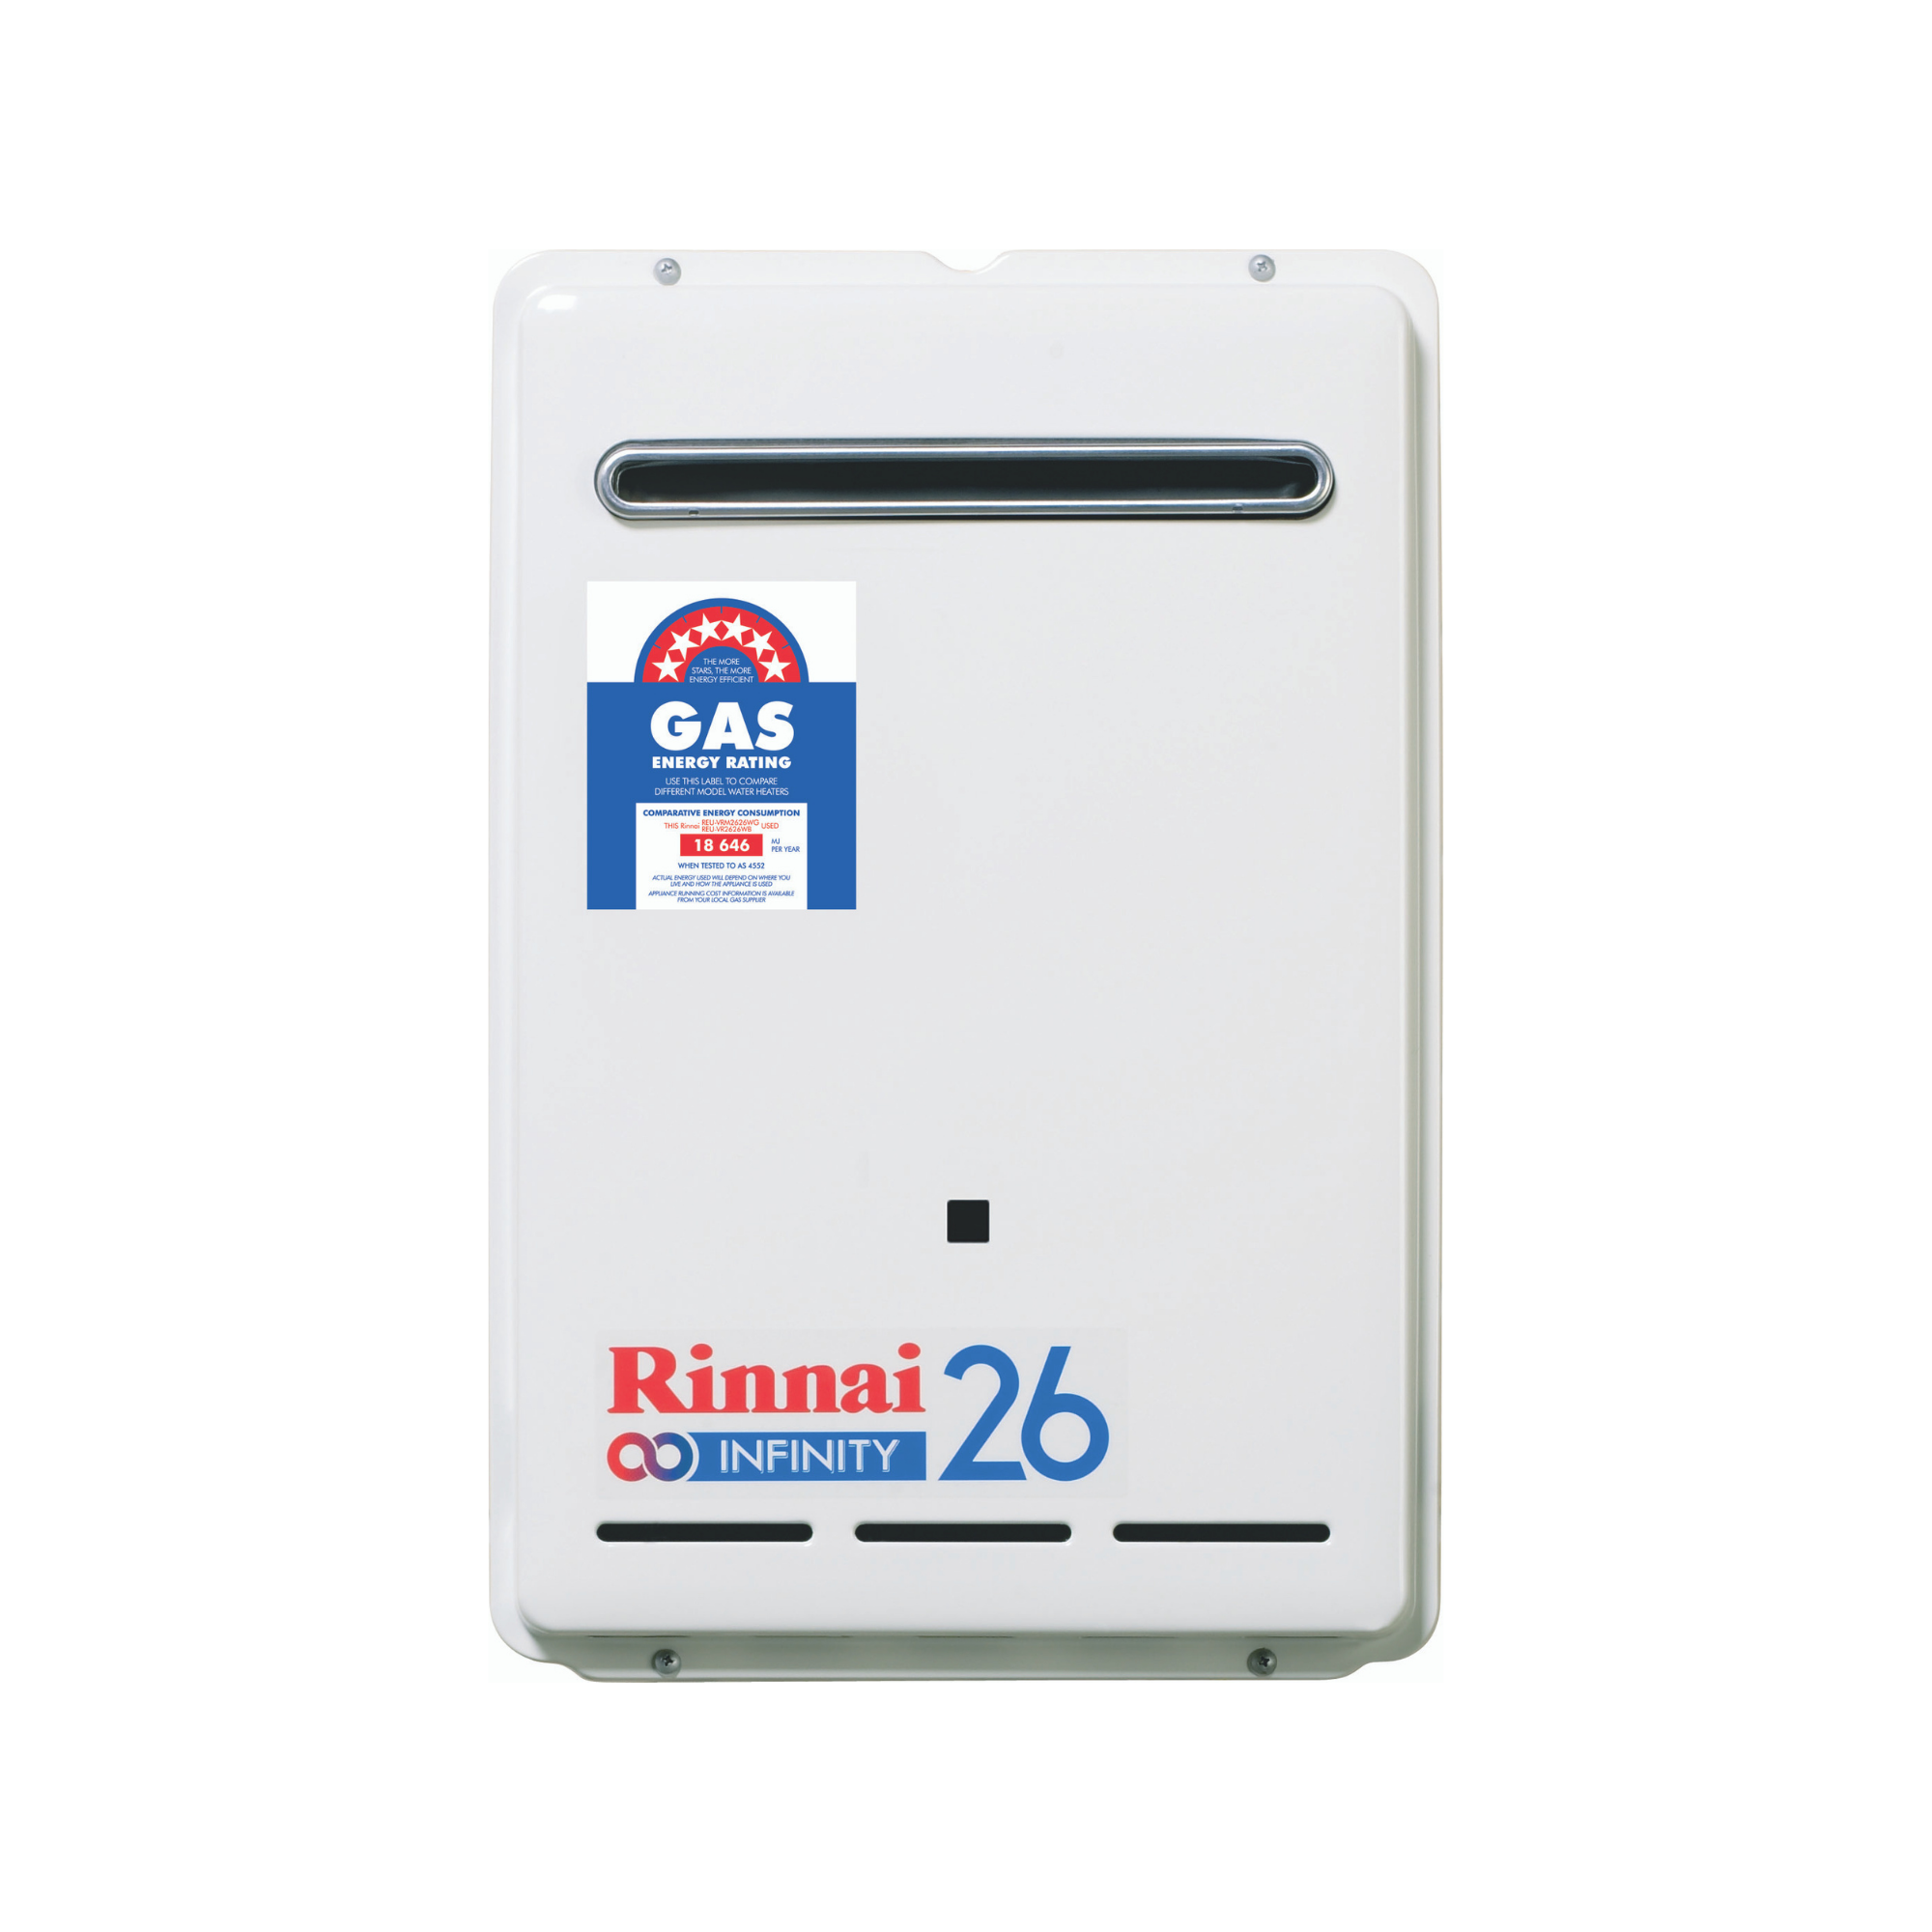 Rinnai Infinity 26 Gas Continuous